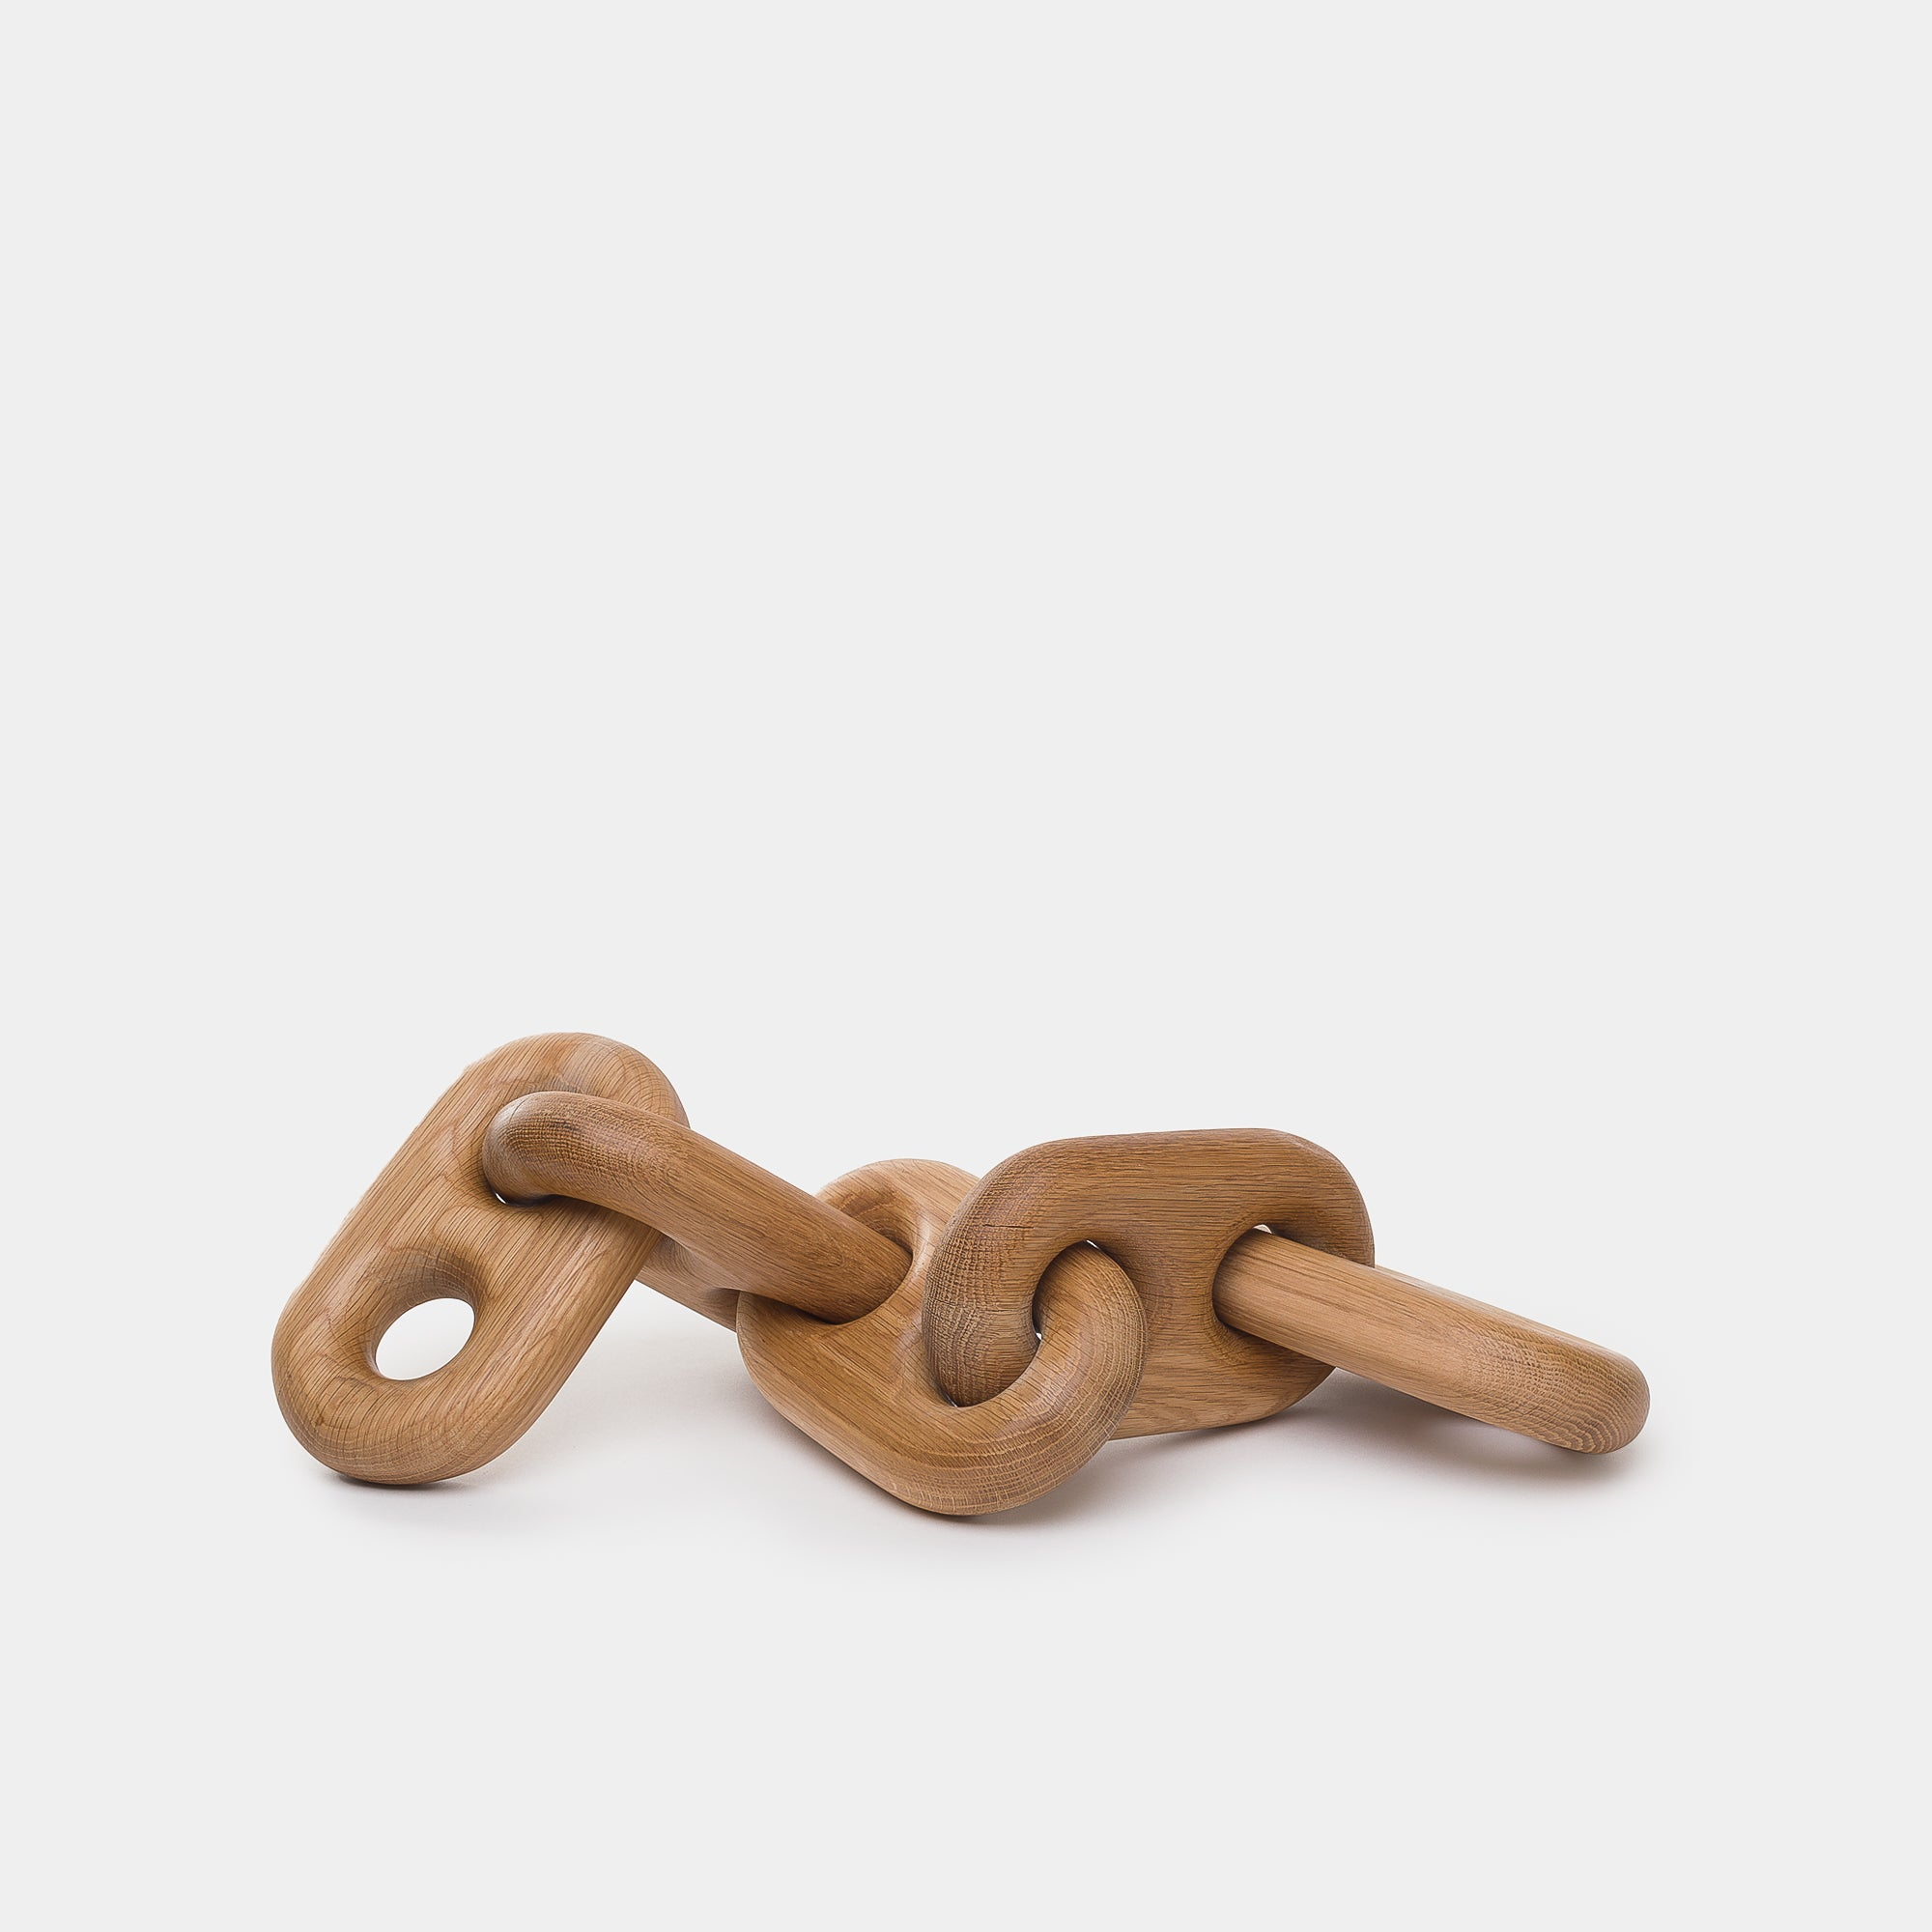 Oversized Wood Link Chain - Made by Shoppe - Furniture – Shoppe Amber Interiors